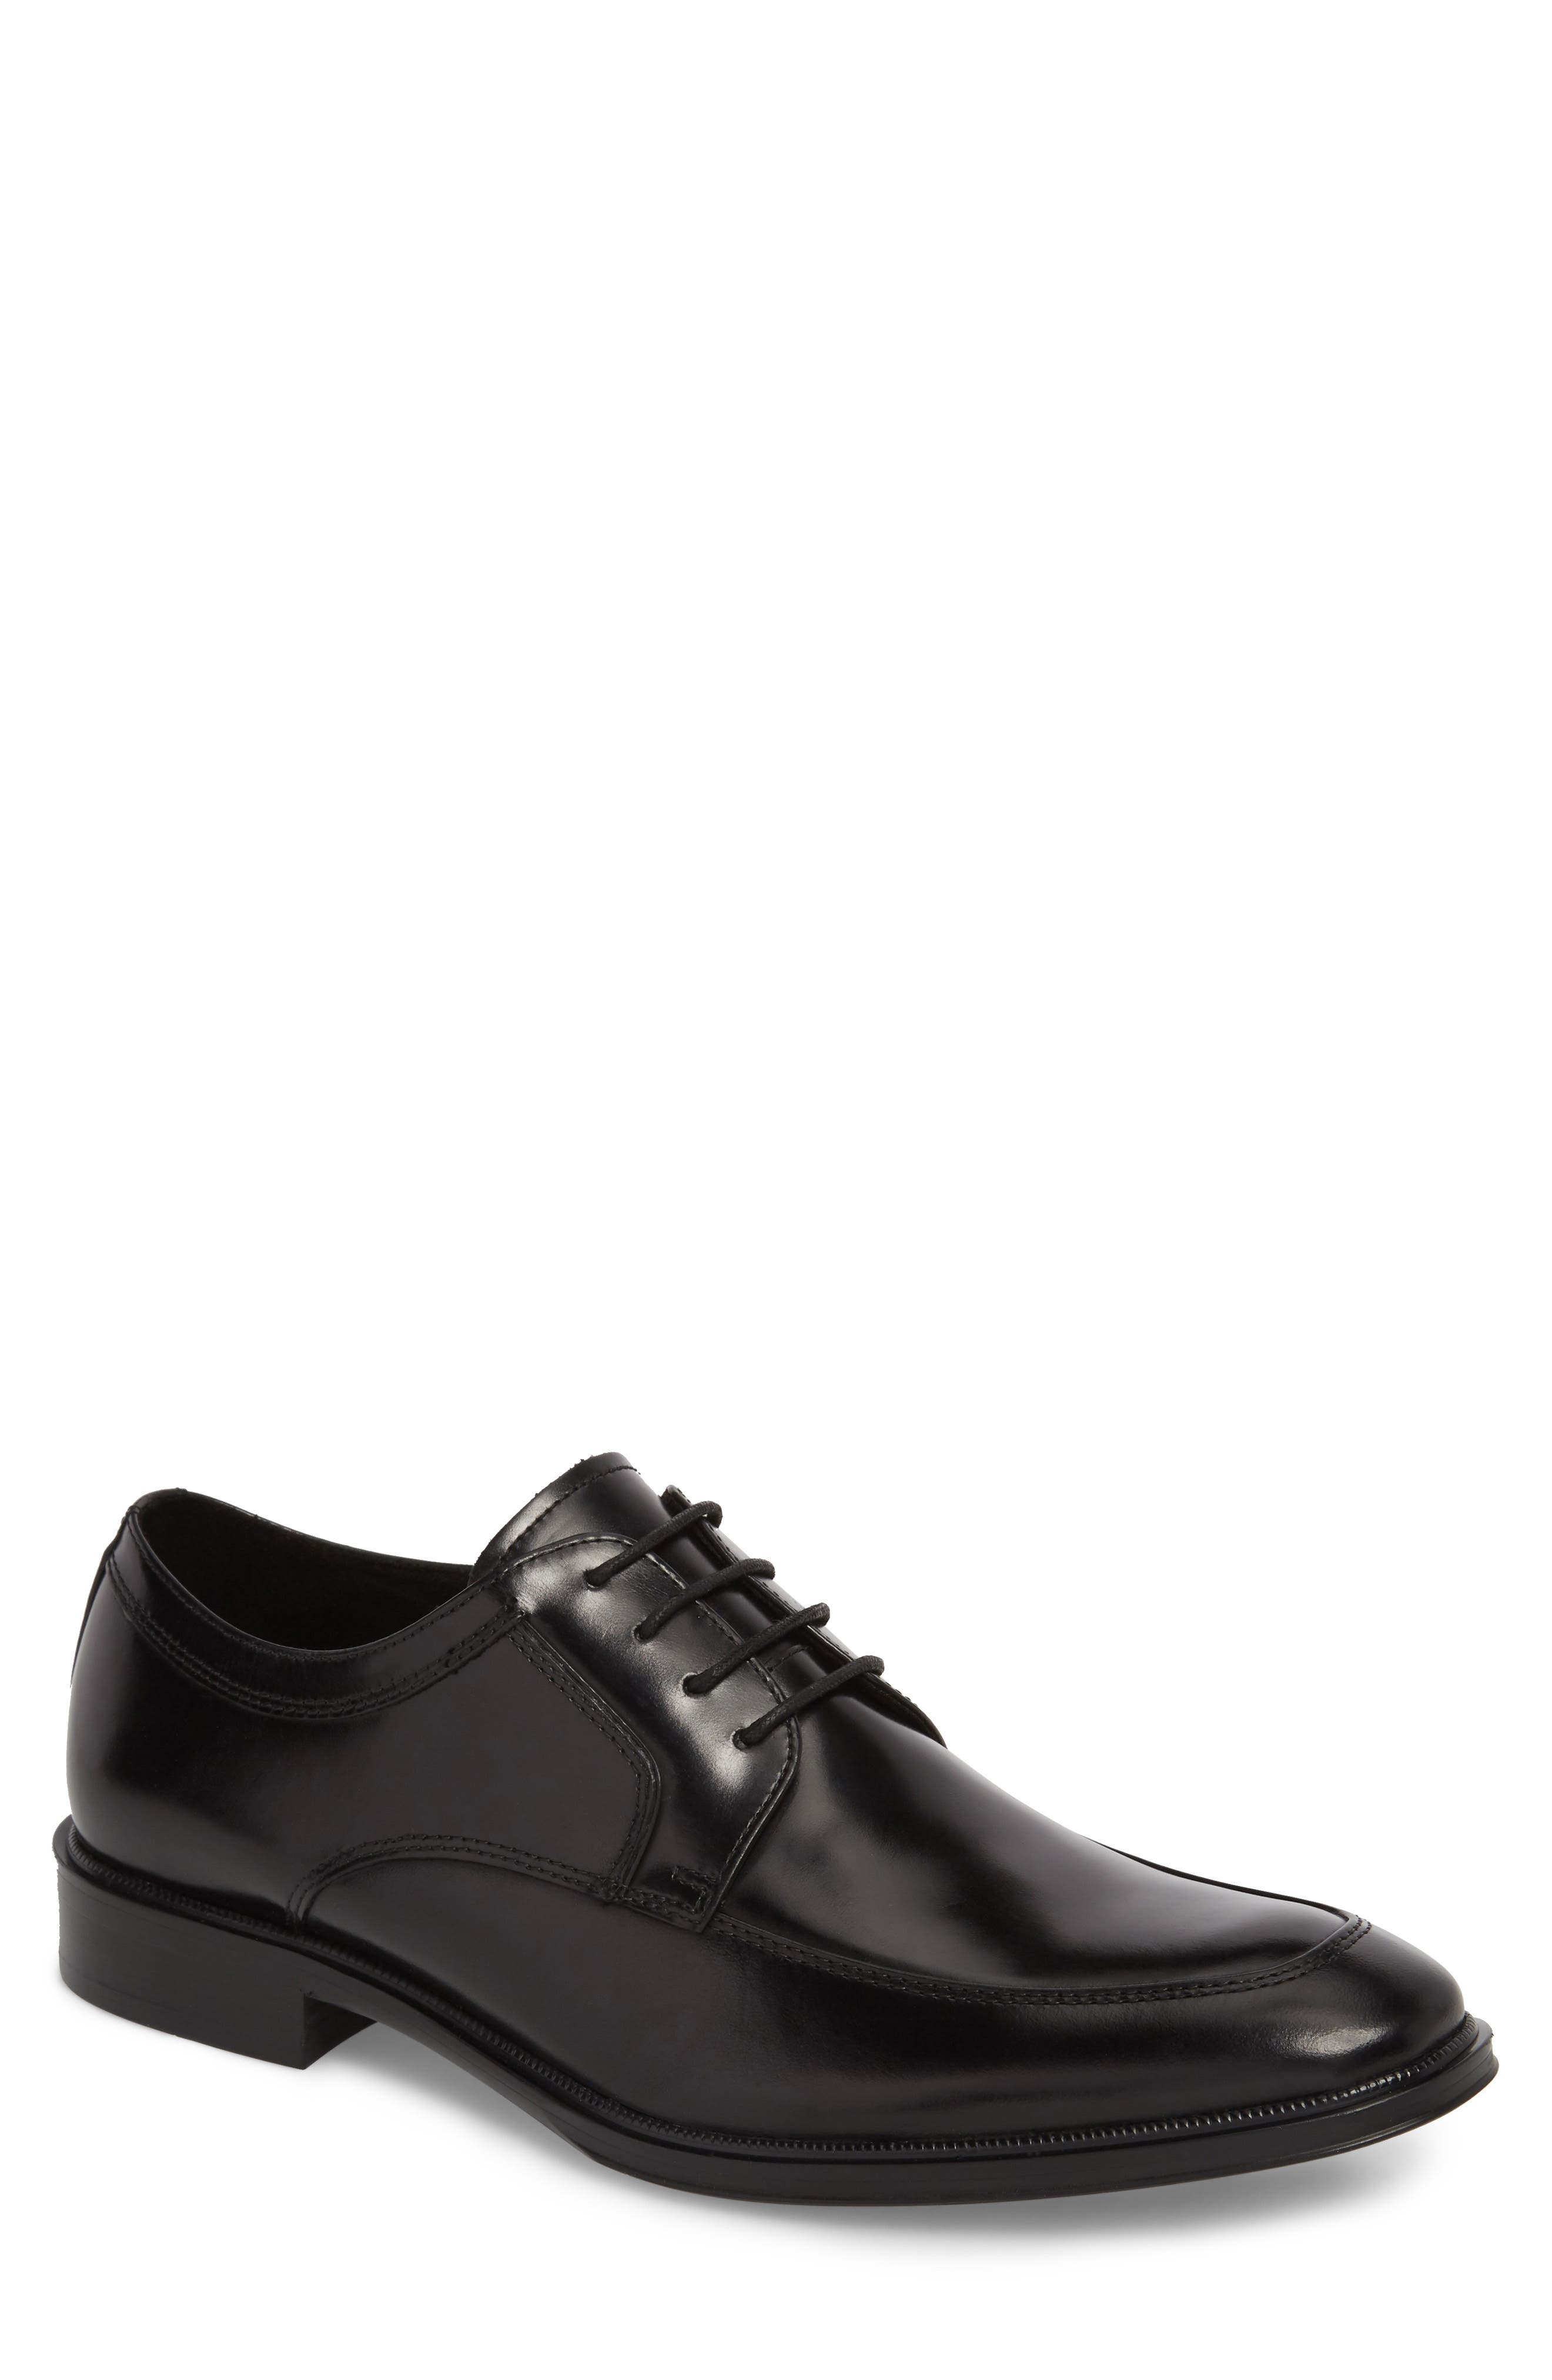 Tully Apron Toe Derby,                         Main,                         color, BLACK LEATHER